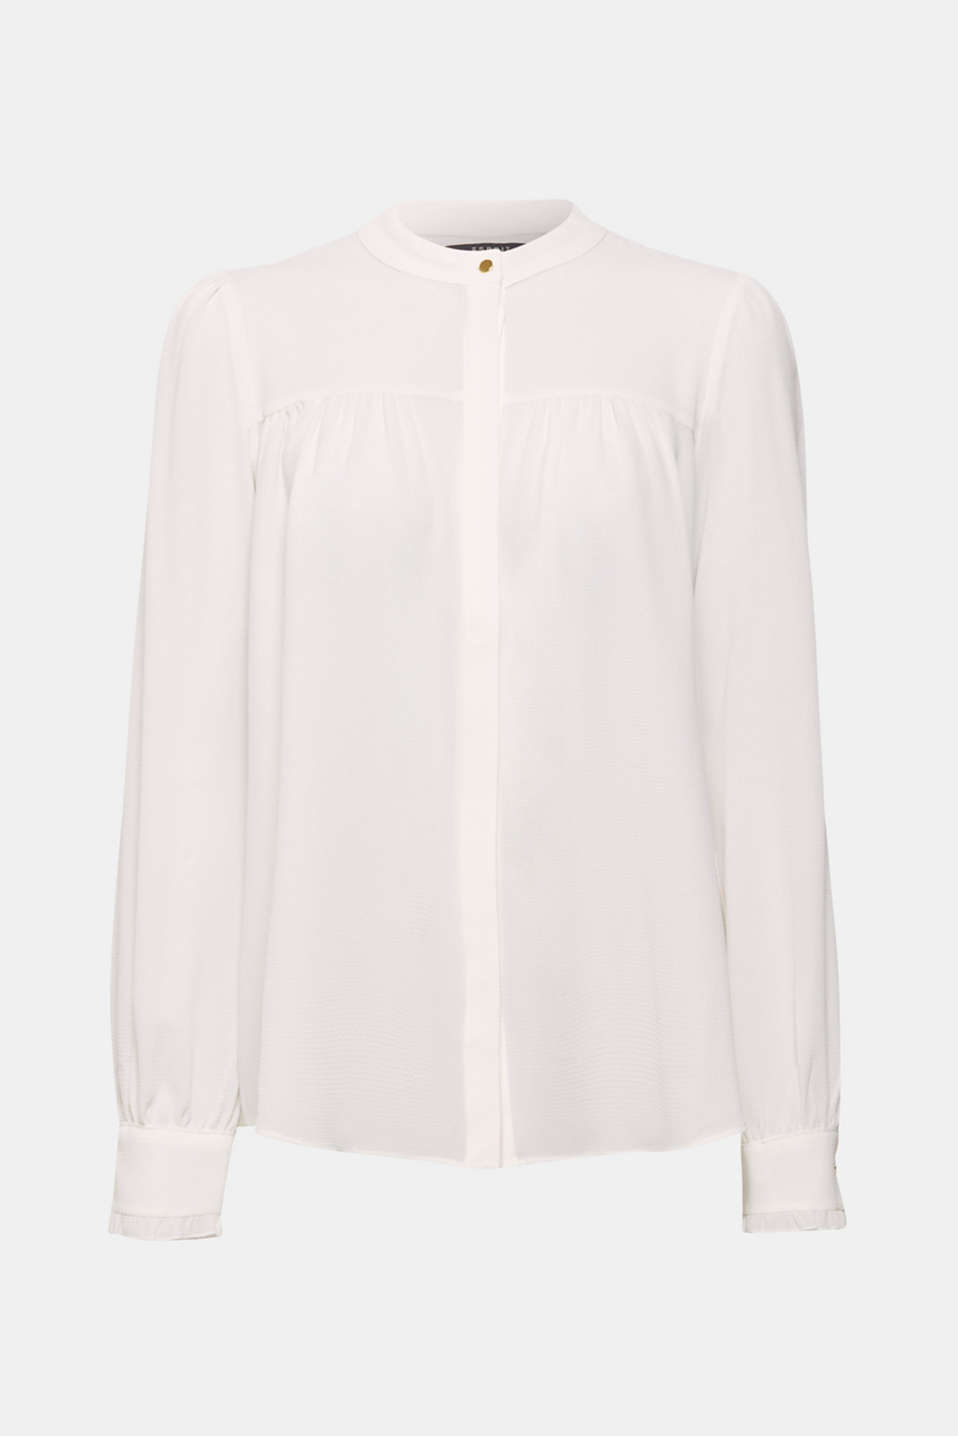 Gives your look a romantic flair: slightly see-through, textured blouse with a band collar, concealed button placket and frilled cuffs.